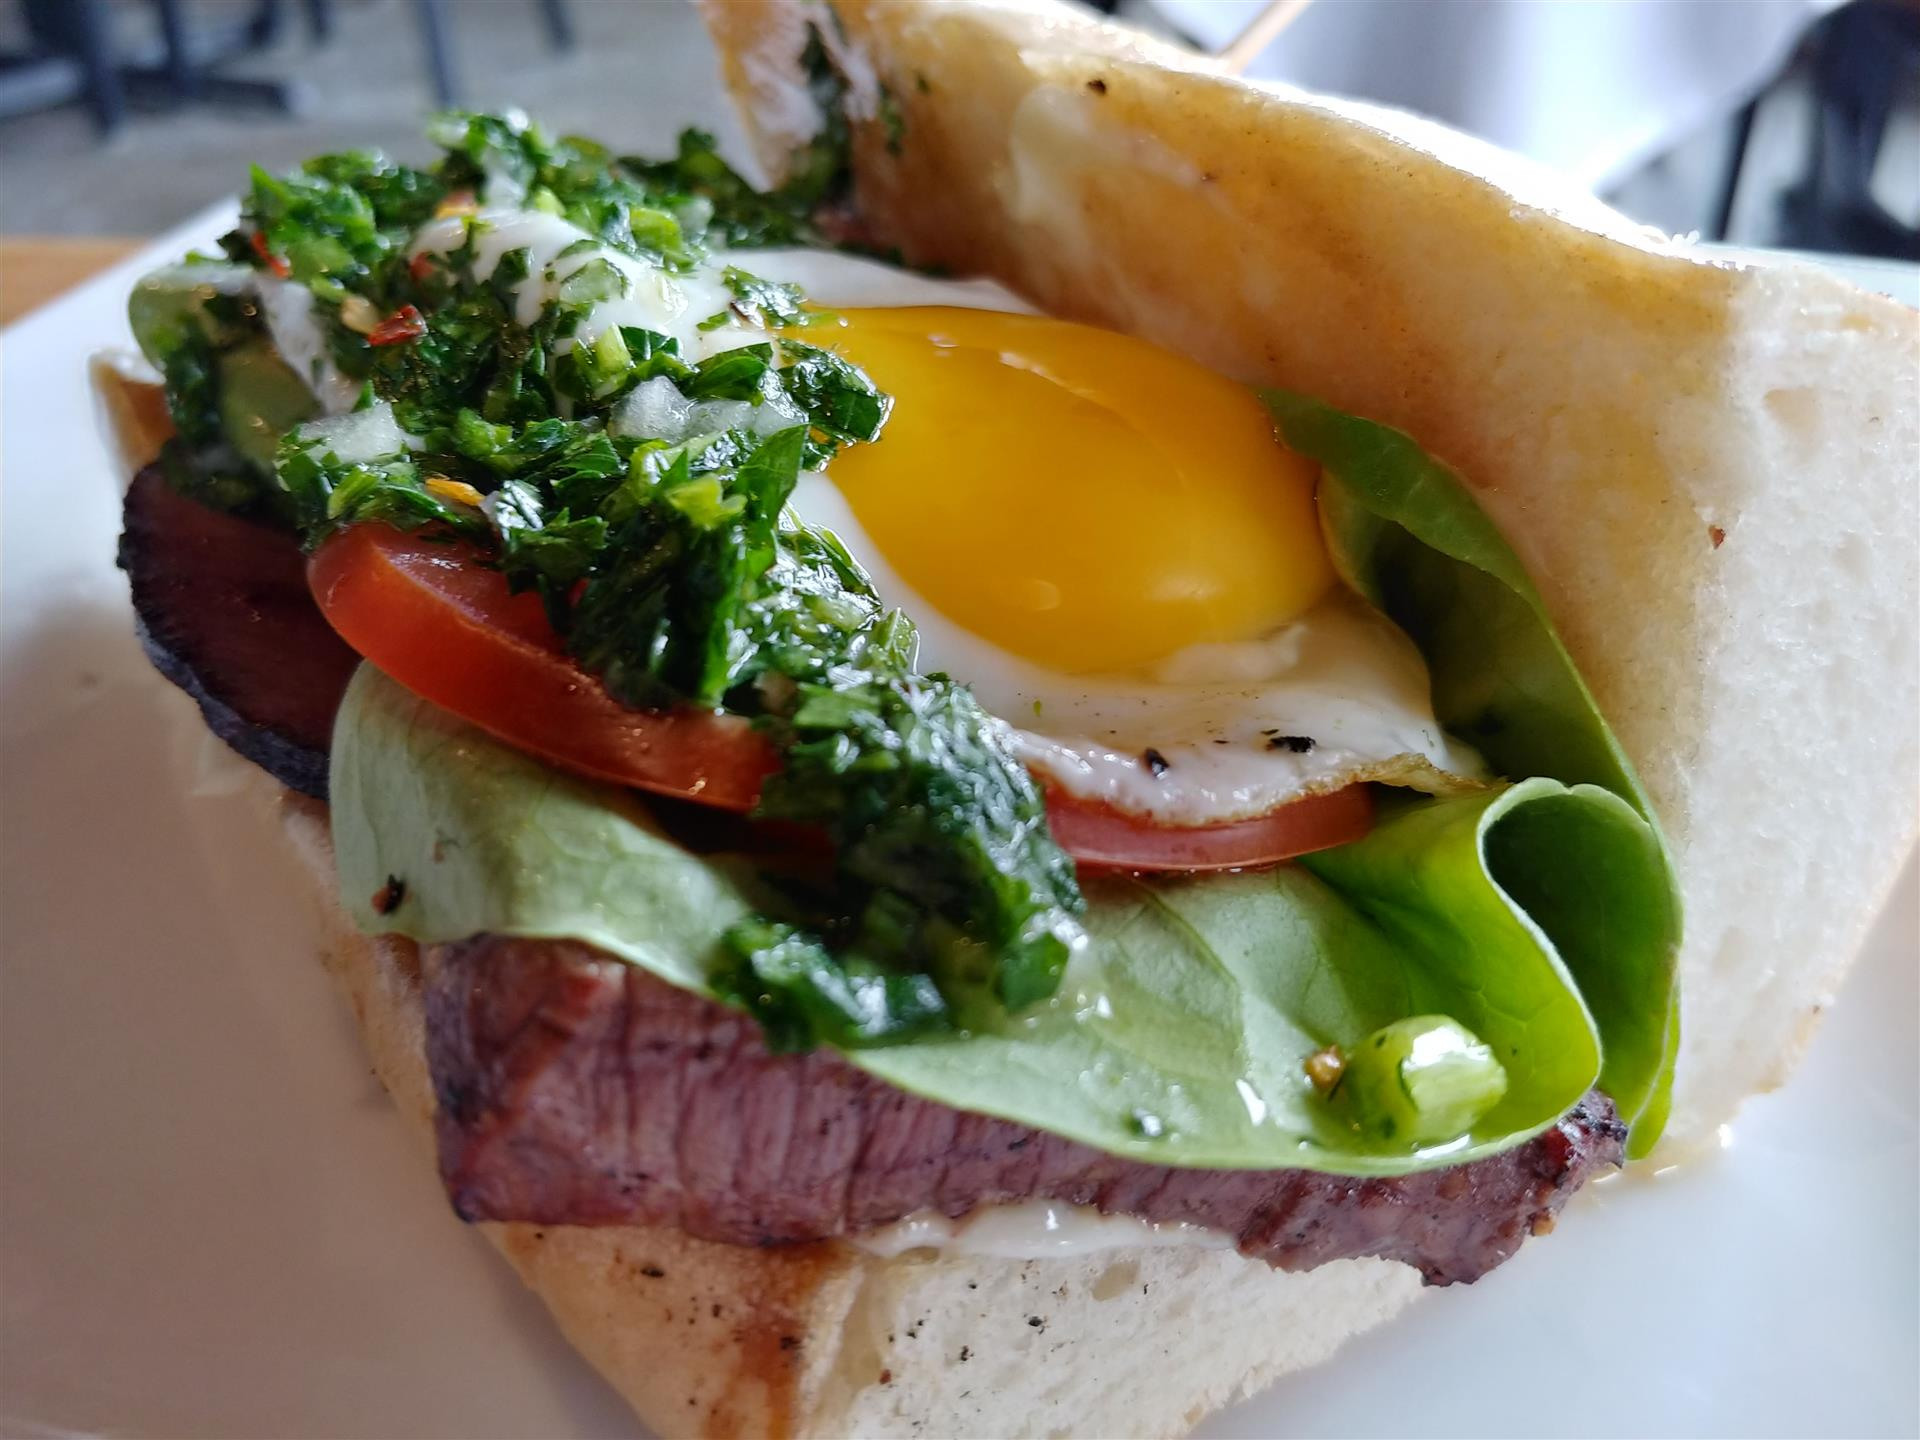 Steak sandwich topped wit lettuce, tomato, and a sunny side up egg